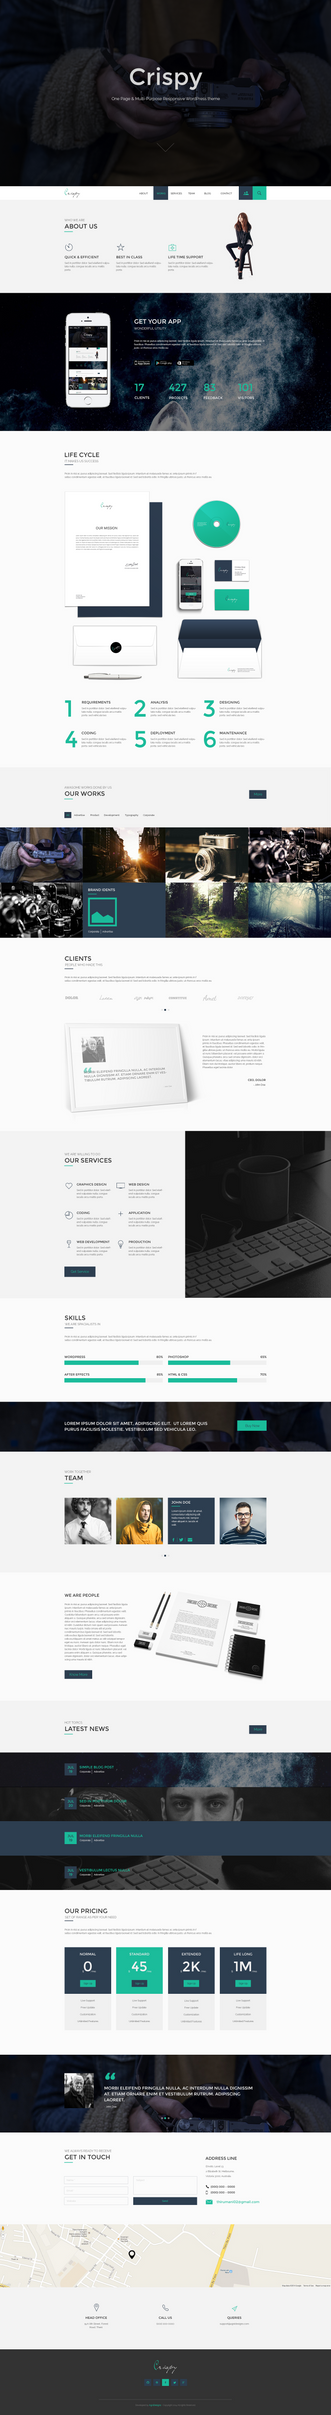 Crispy - One Multi Page Template by sandracz